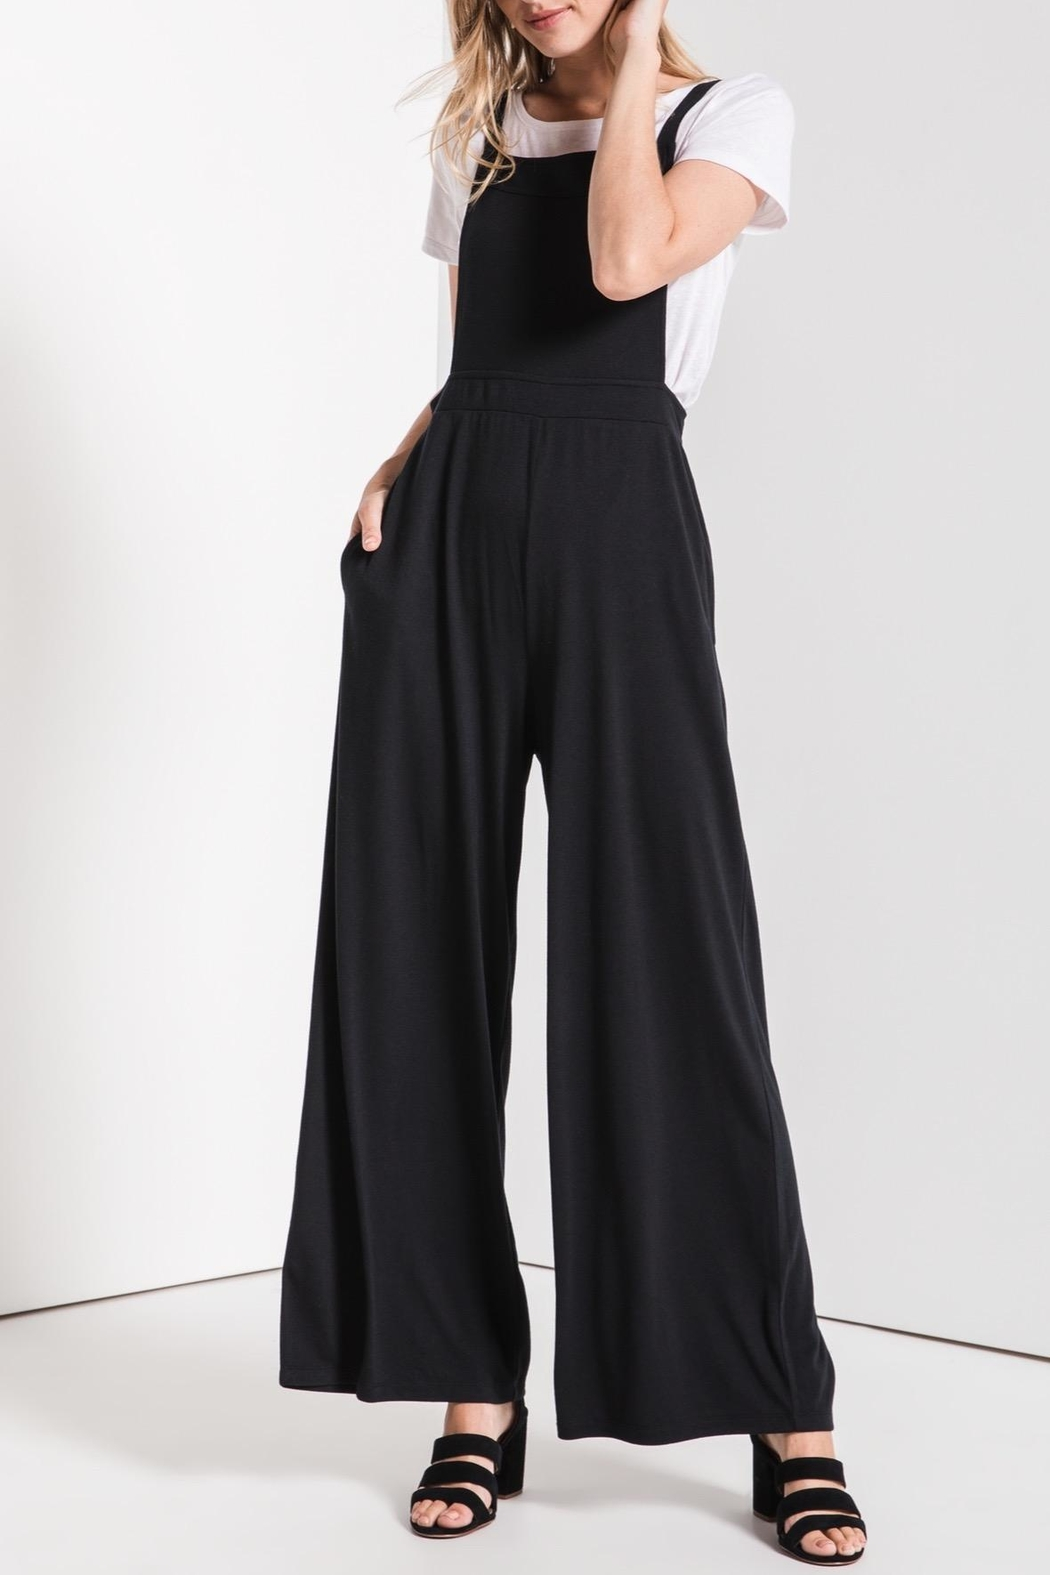 z supply Overall Styled Jumpsuit - Main Image